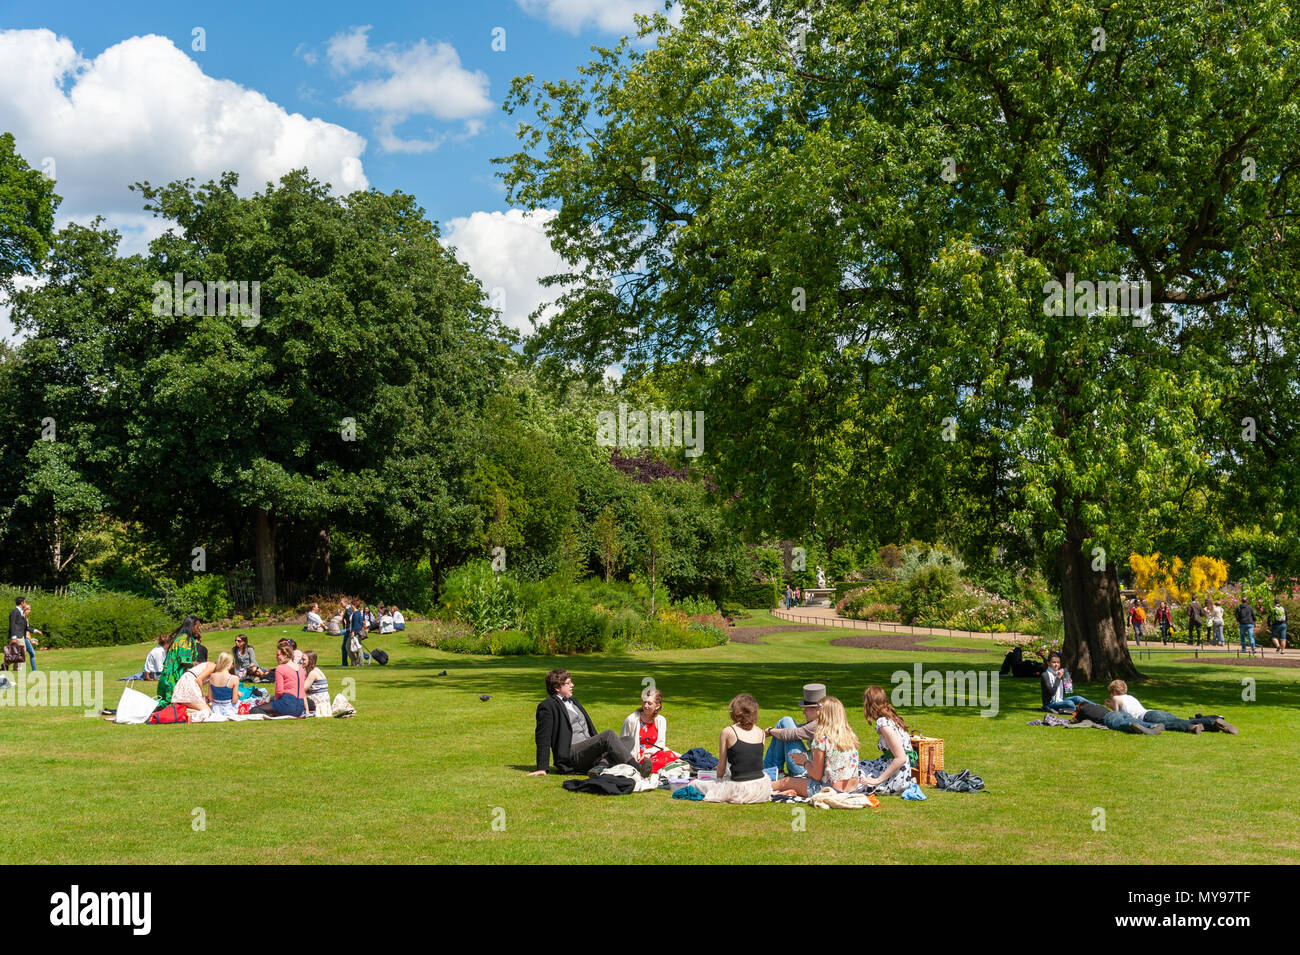 Summer picnic in Hyde Park, London, UK - Stock Image